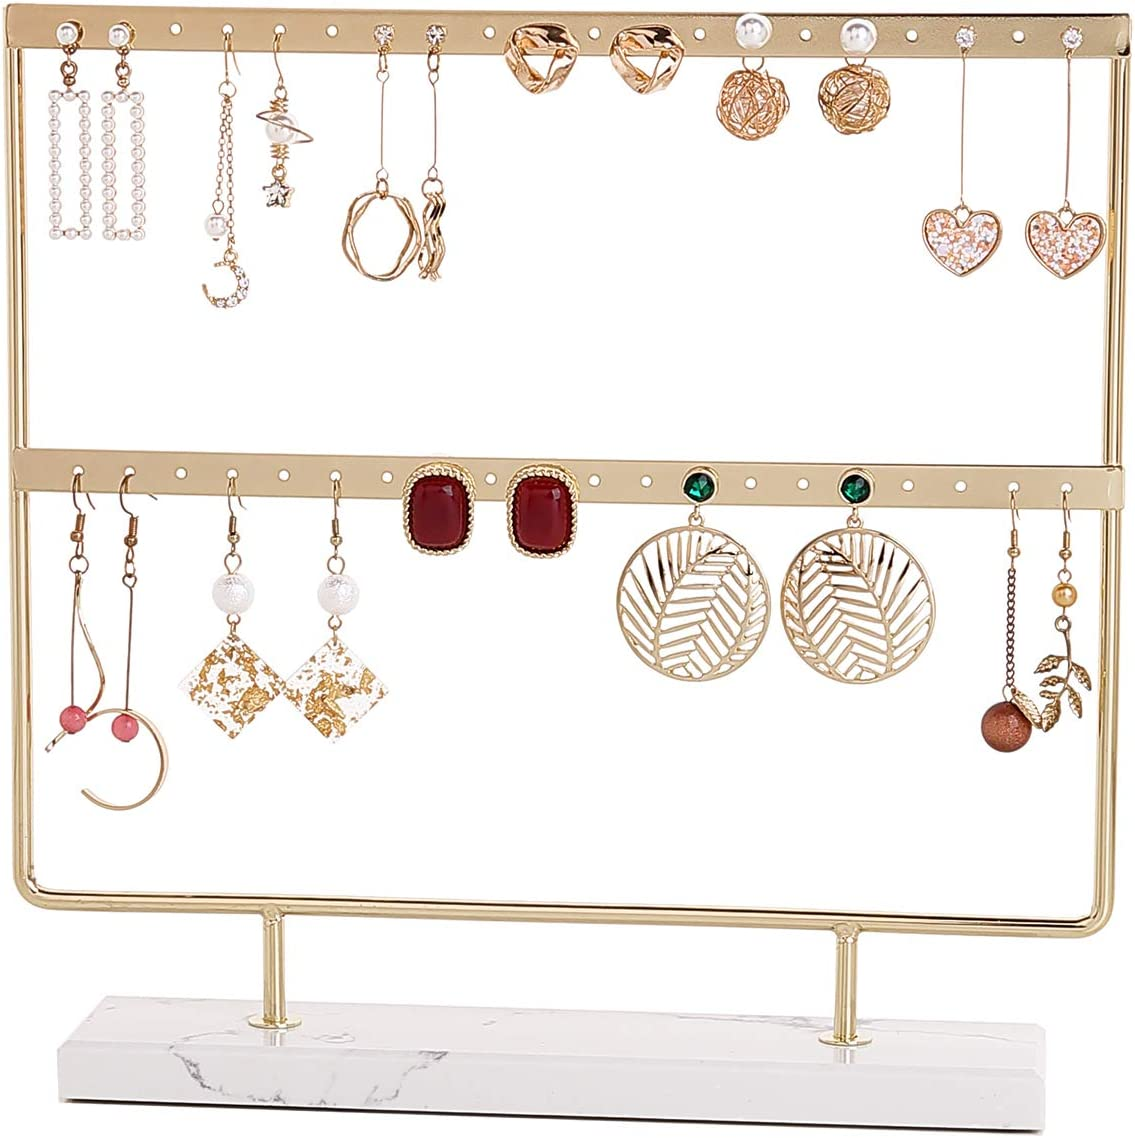 LuLaRine Earrings Holder Organizer Jewelry Display for Women, Marble Stand (Gold)